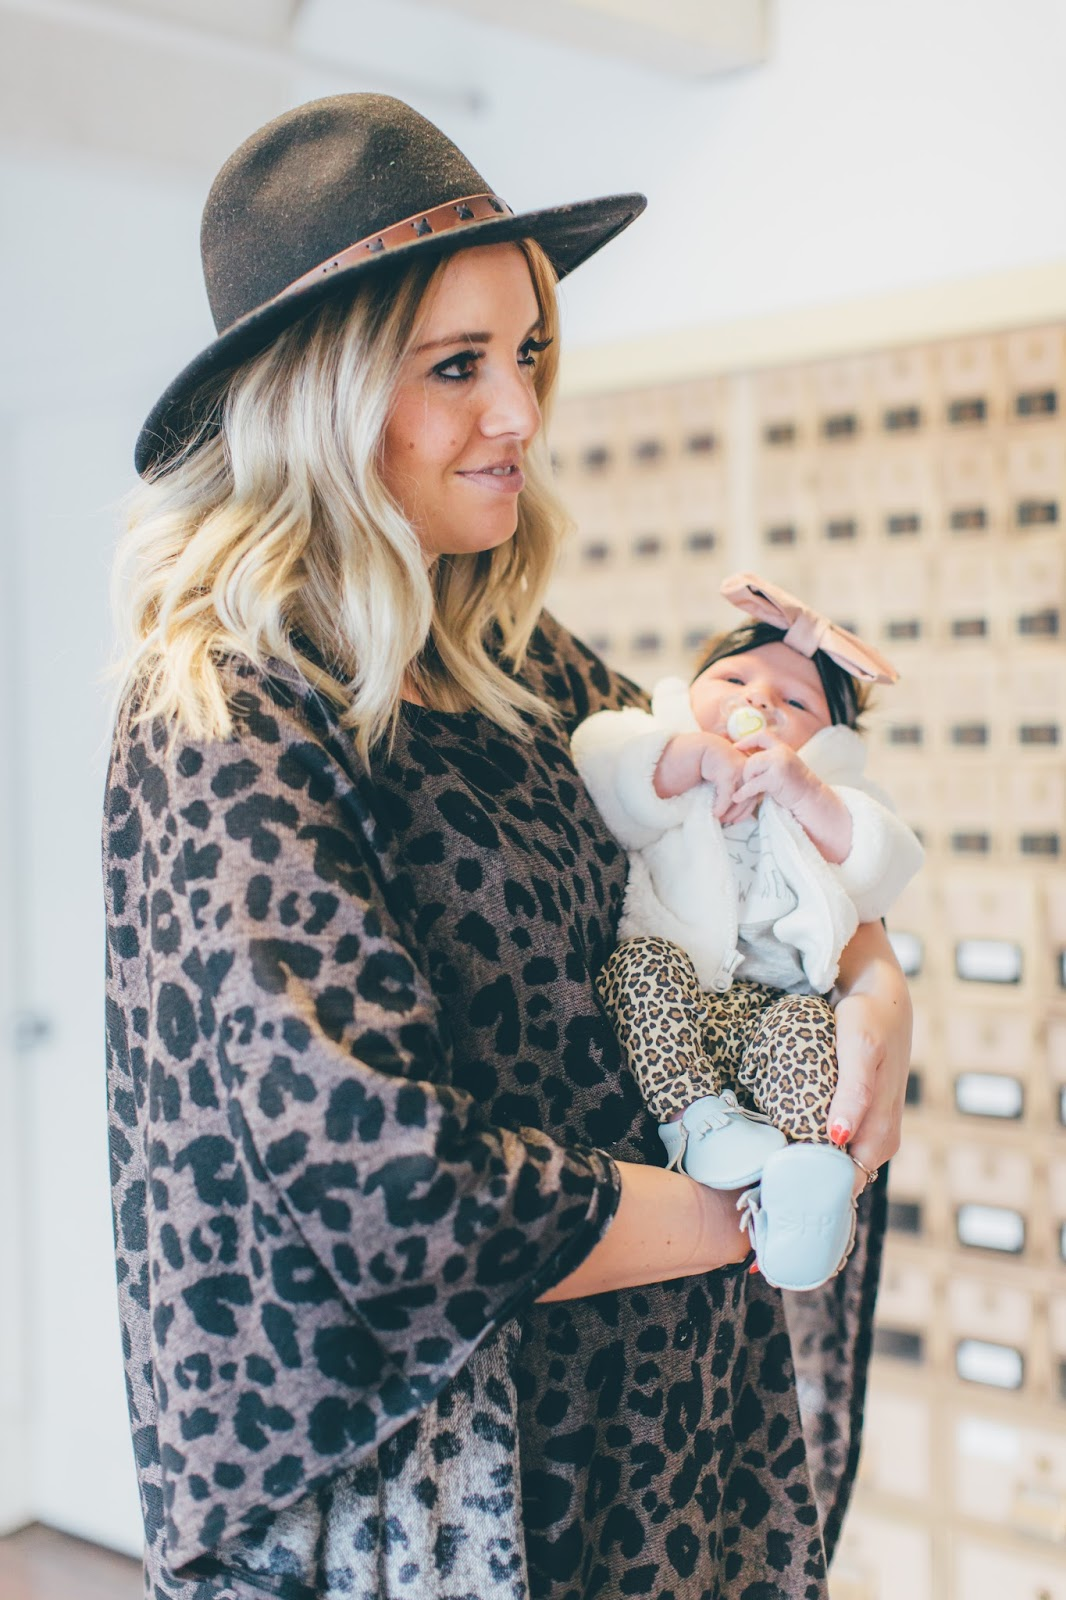 Leopard, Mommy & Me, Utah Fashion Blogger